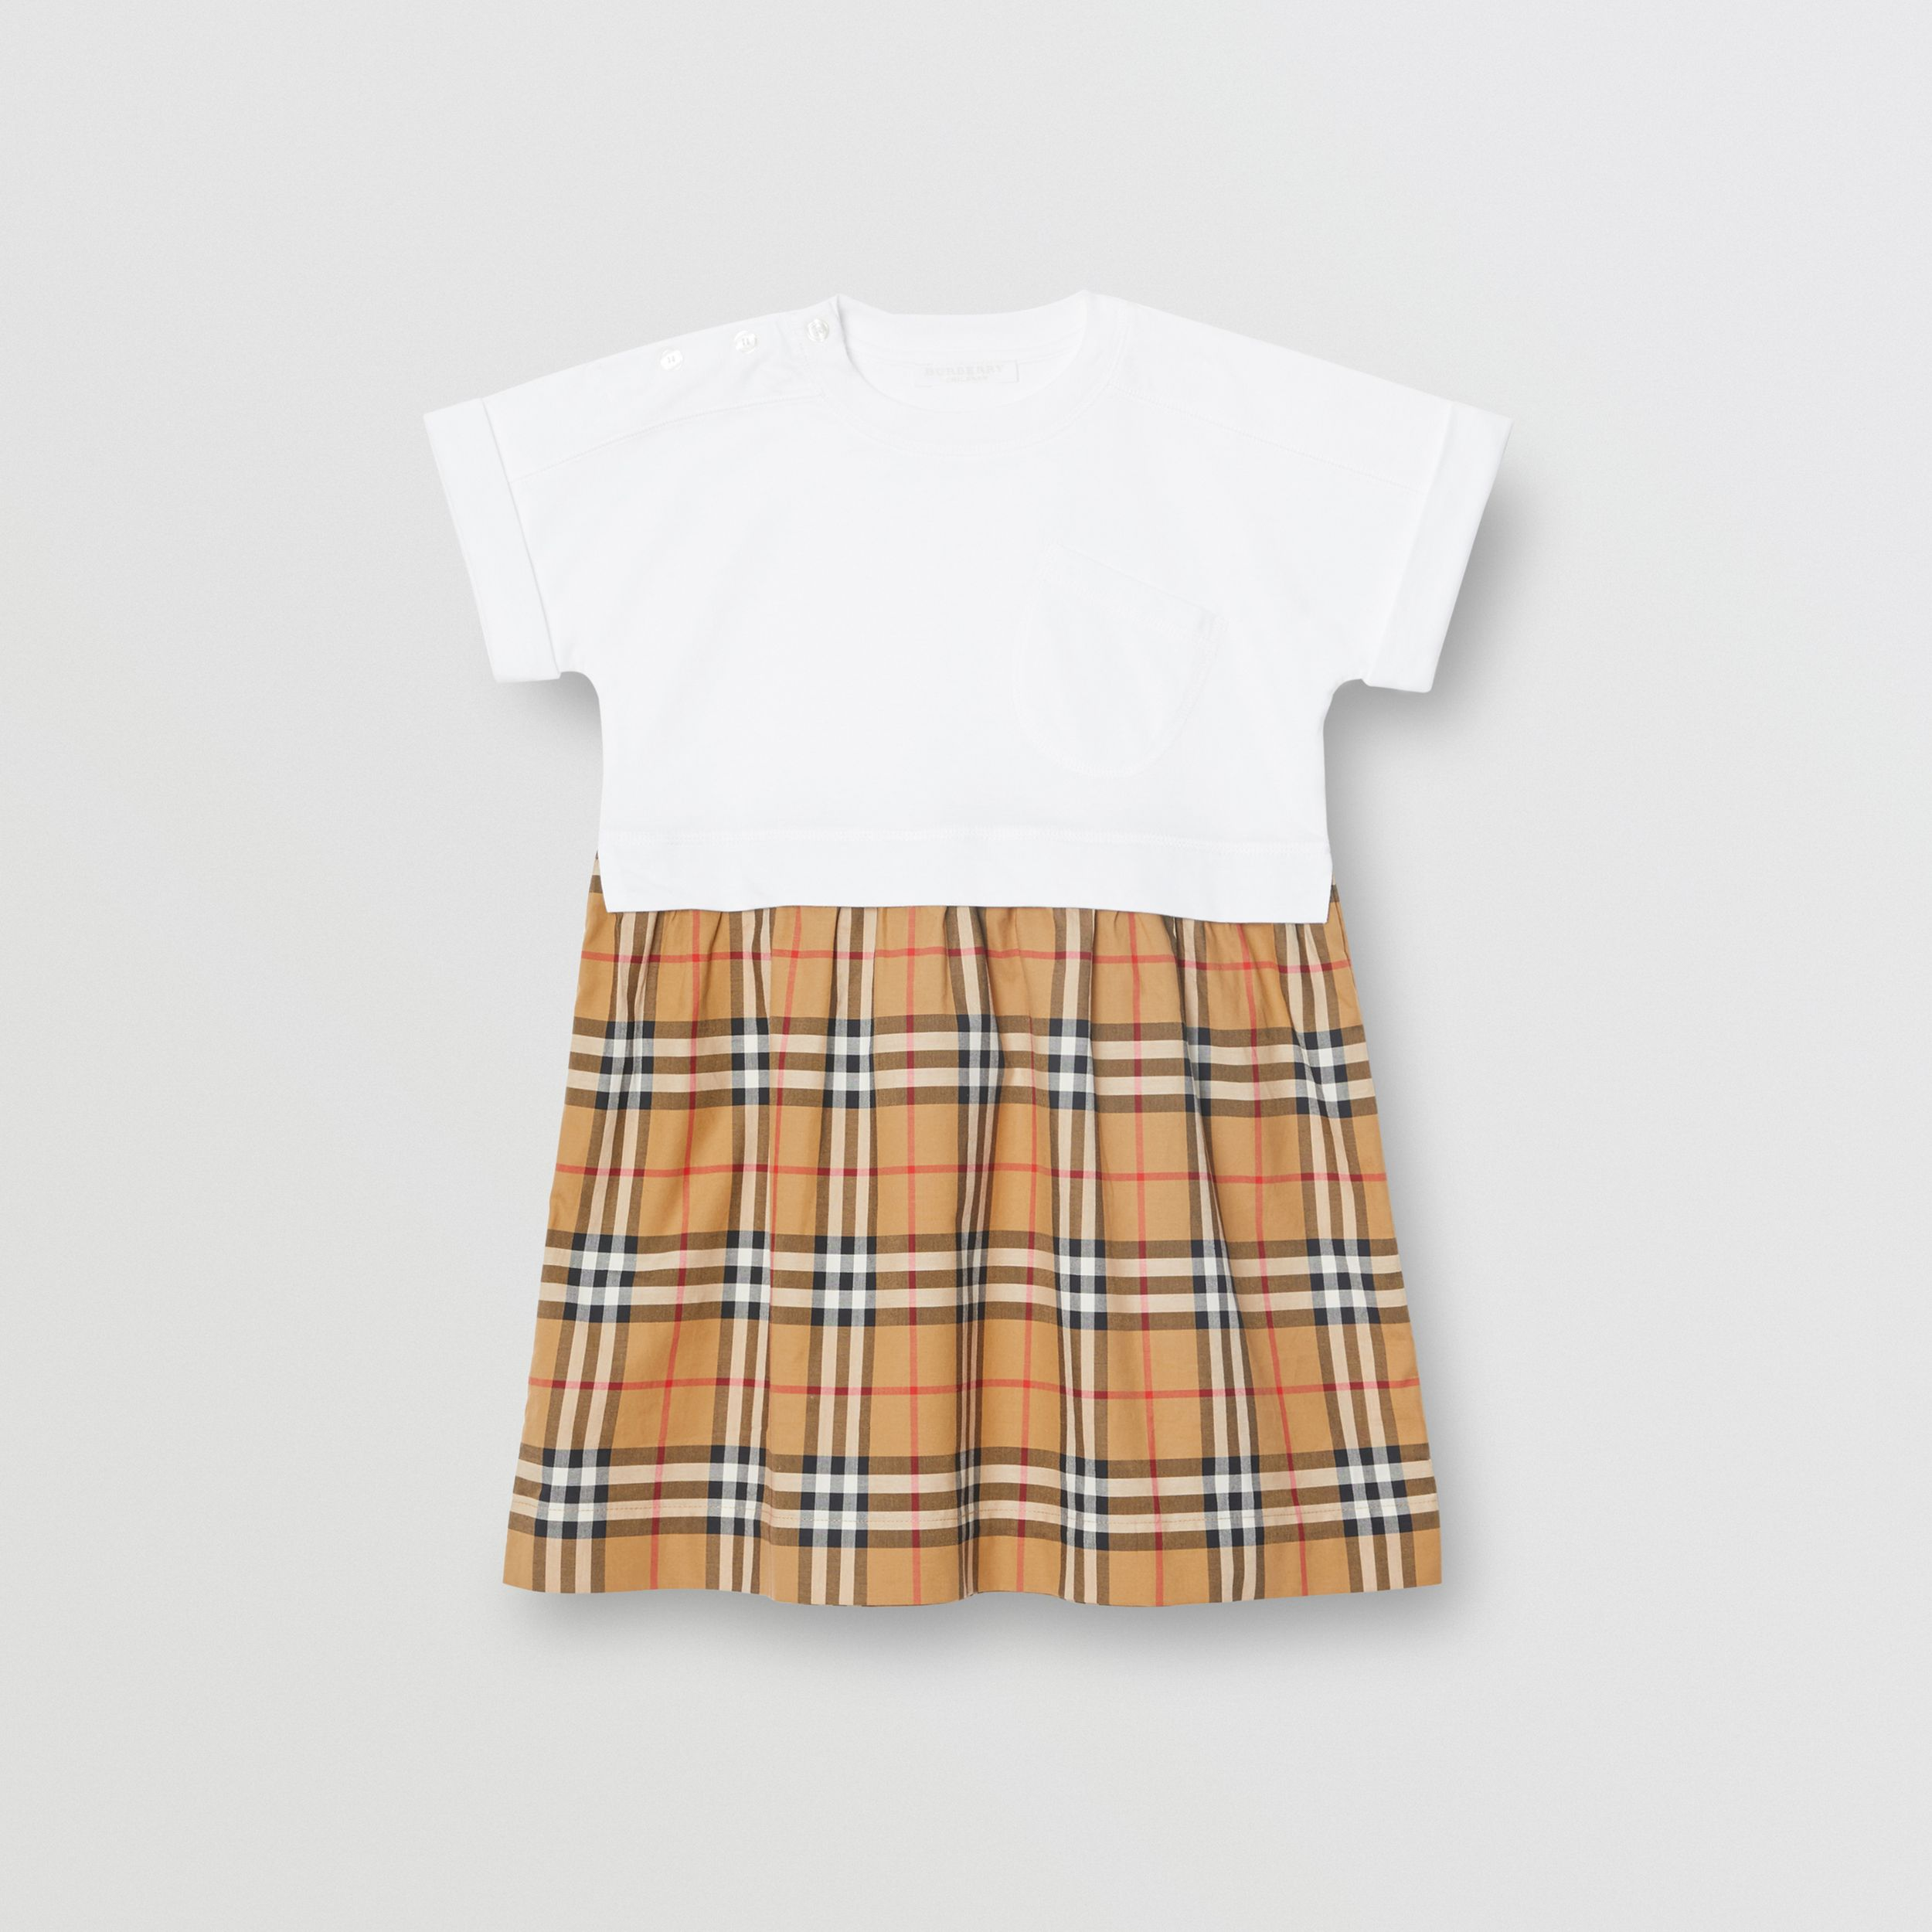 Vintage Check Cotton Dress in White | Burberry - 1